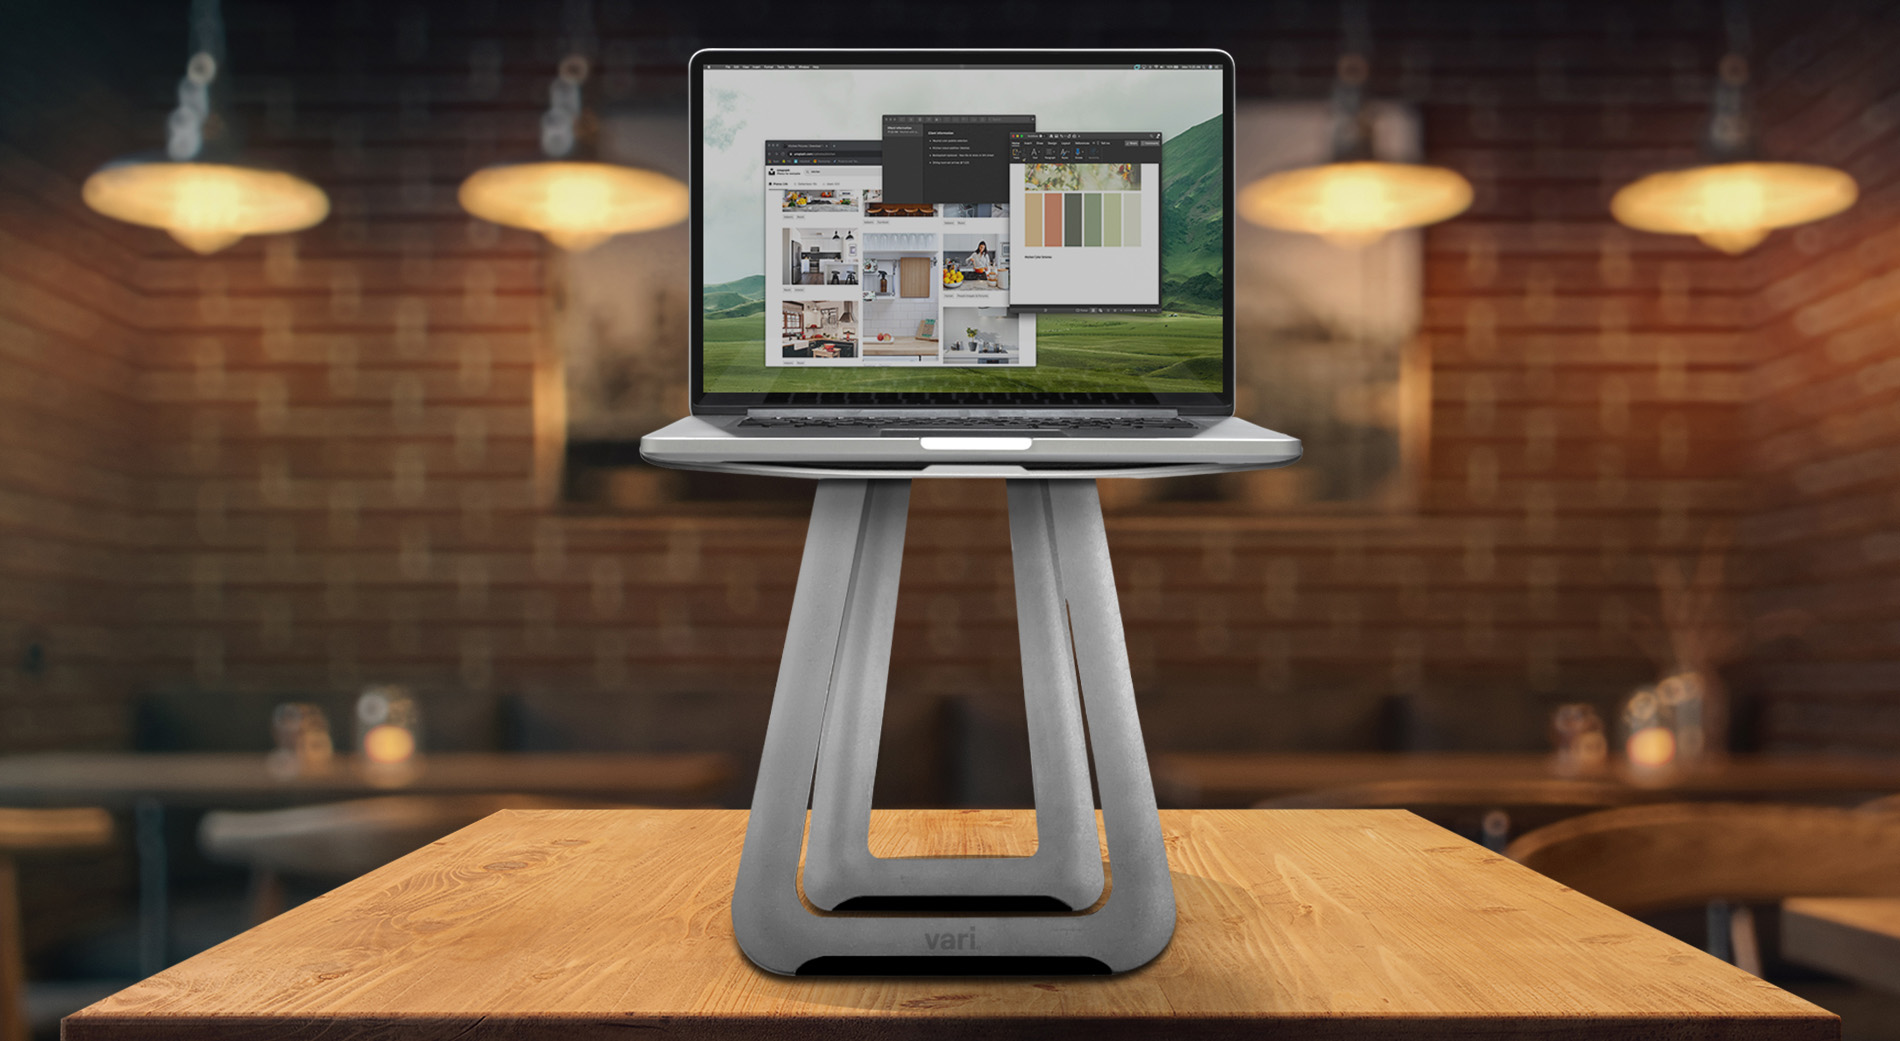 Calling all road warriors, coffee shop creatives, digital nomads, and mobile mavens: You can now work elevated from anywhere with the VariDesk Portable Laptop Stand.